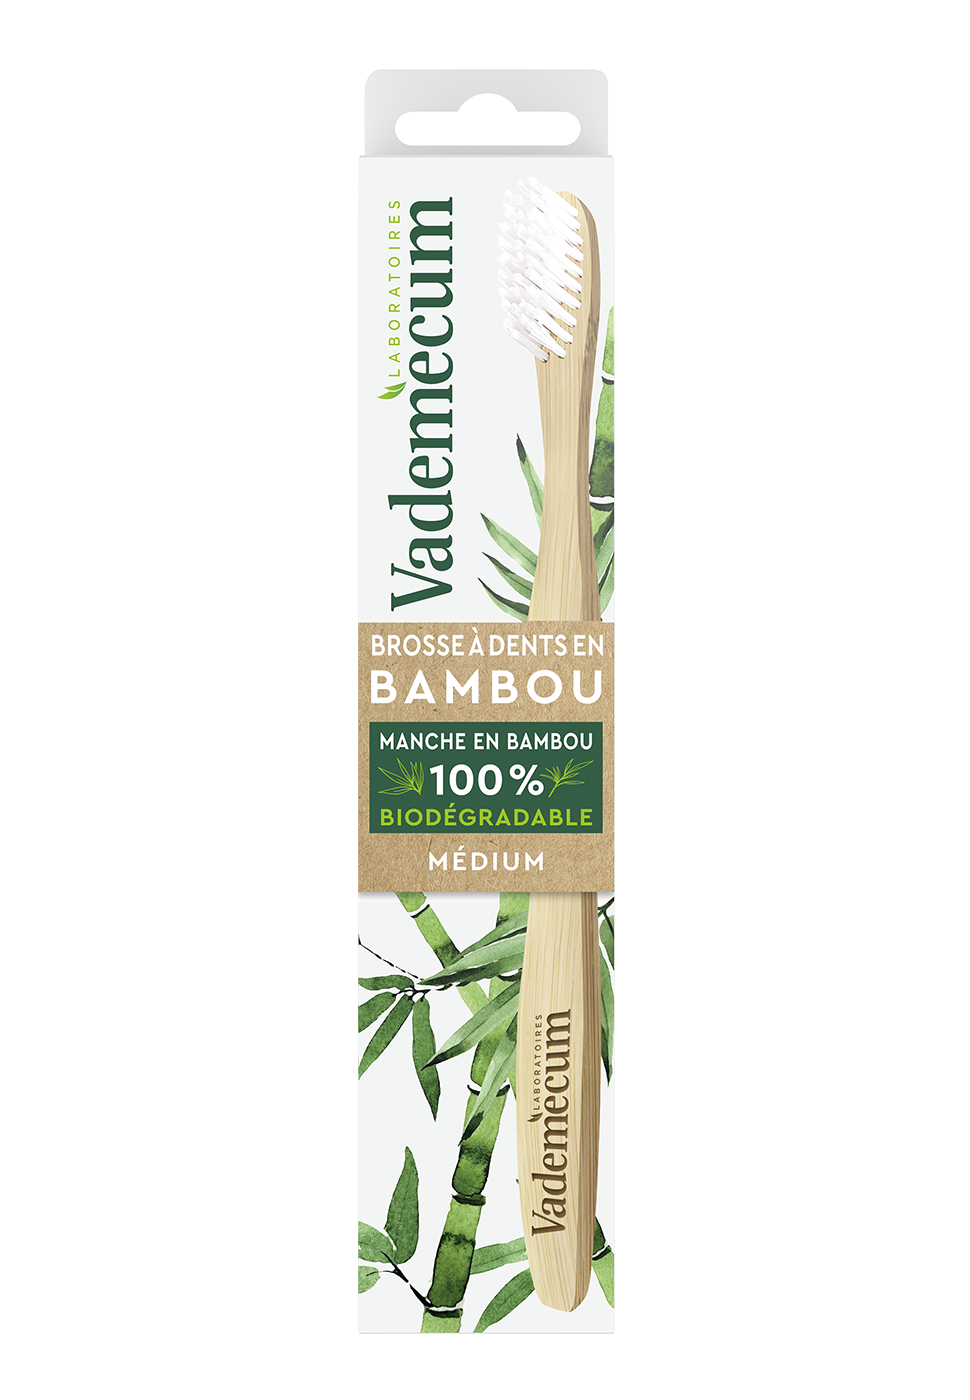 Vademecum_brosse_a_dents_bambou_medium_blanche_packshot